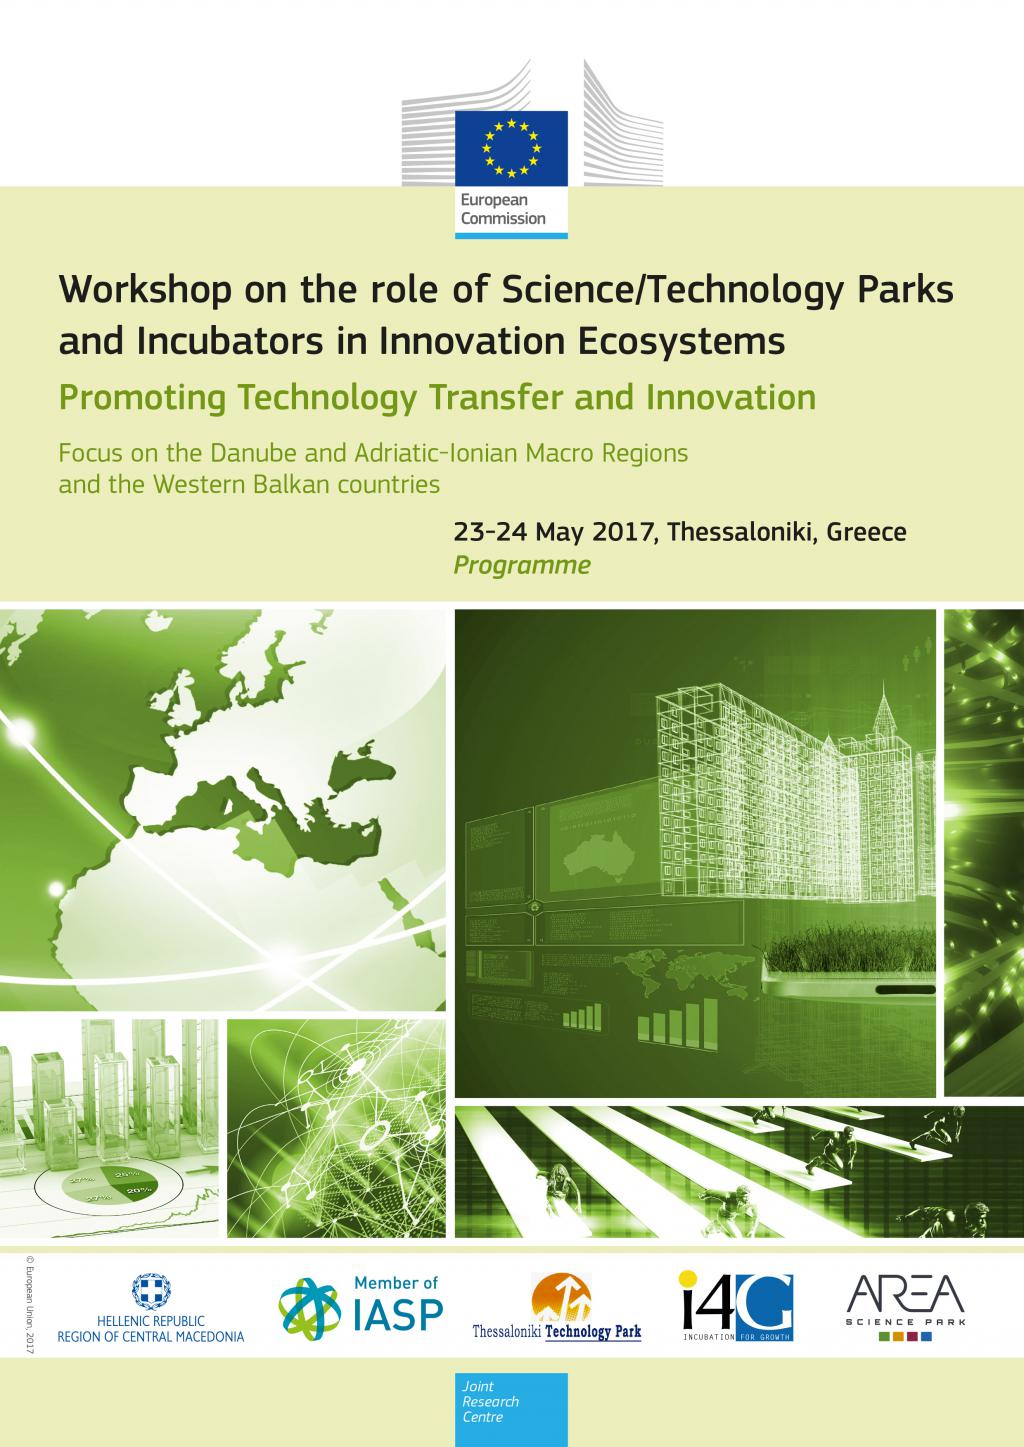 the role of science and technology Science and technology are now the key elements to development as the scientific revolutions reinforce economic progress, infrastructure and improve health and education systems today i will discuss the role of science and technology for future developments.